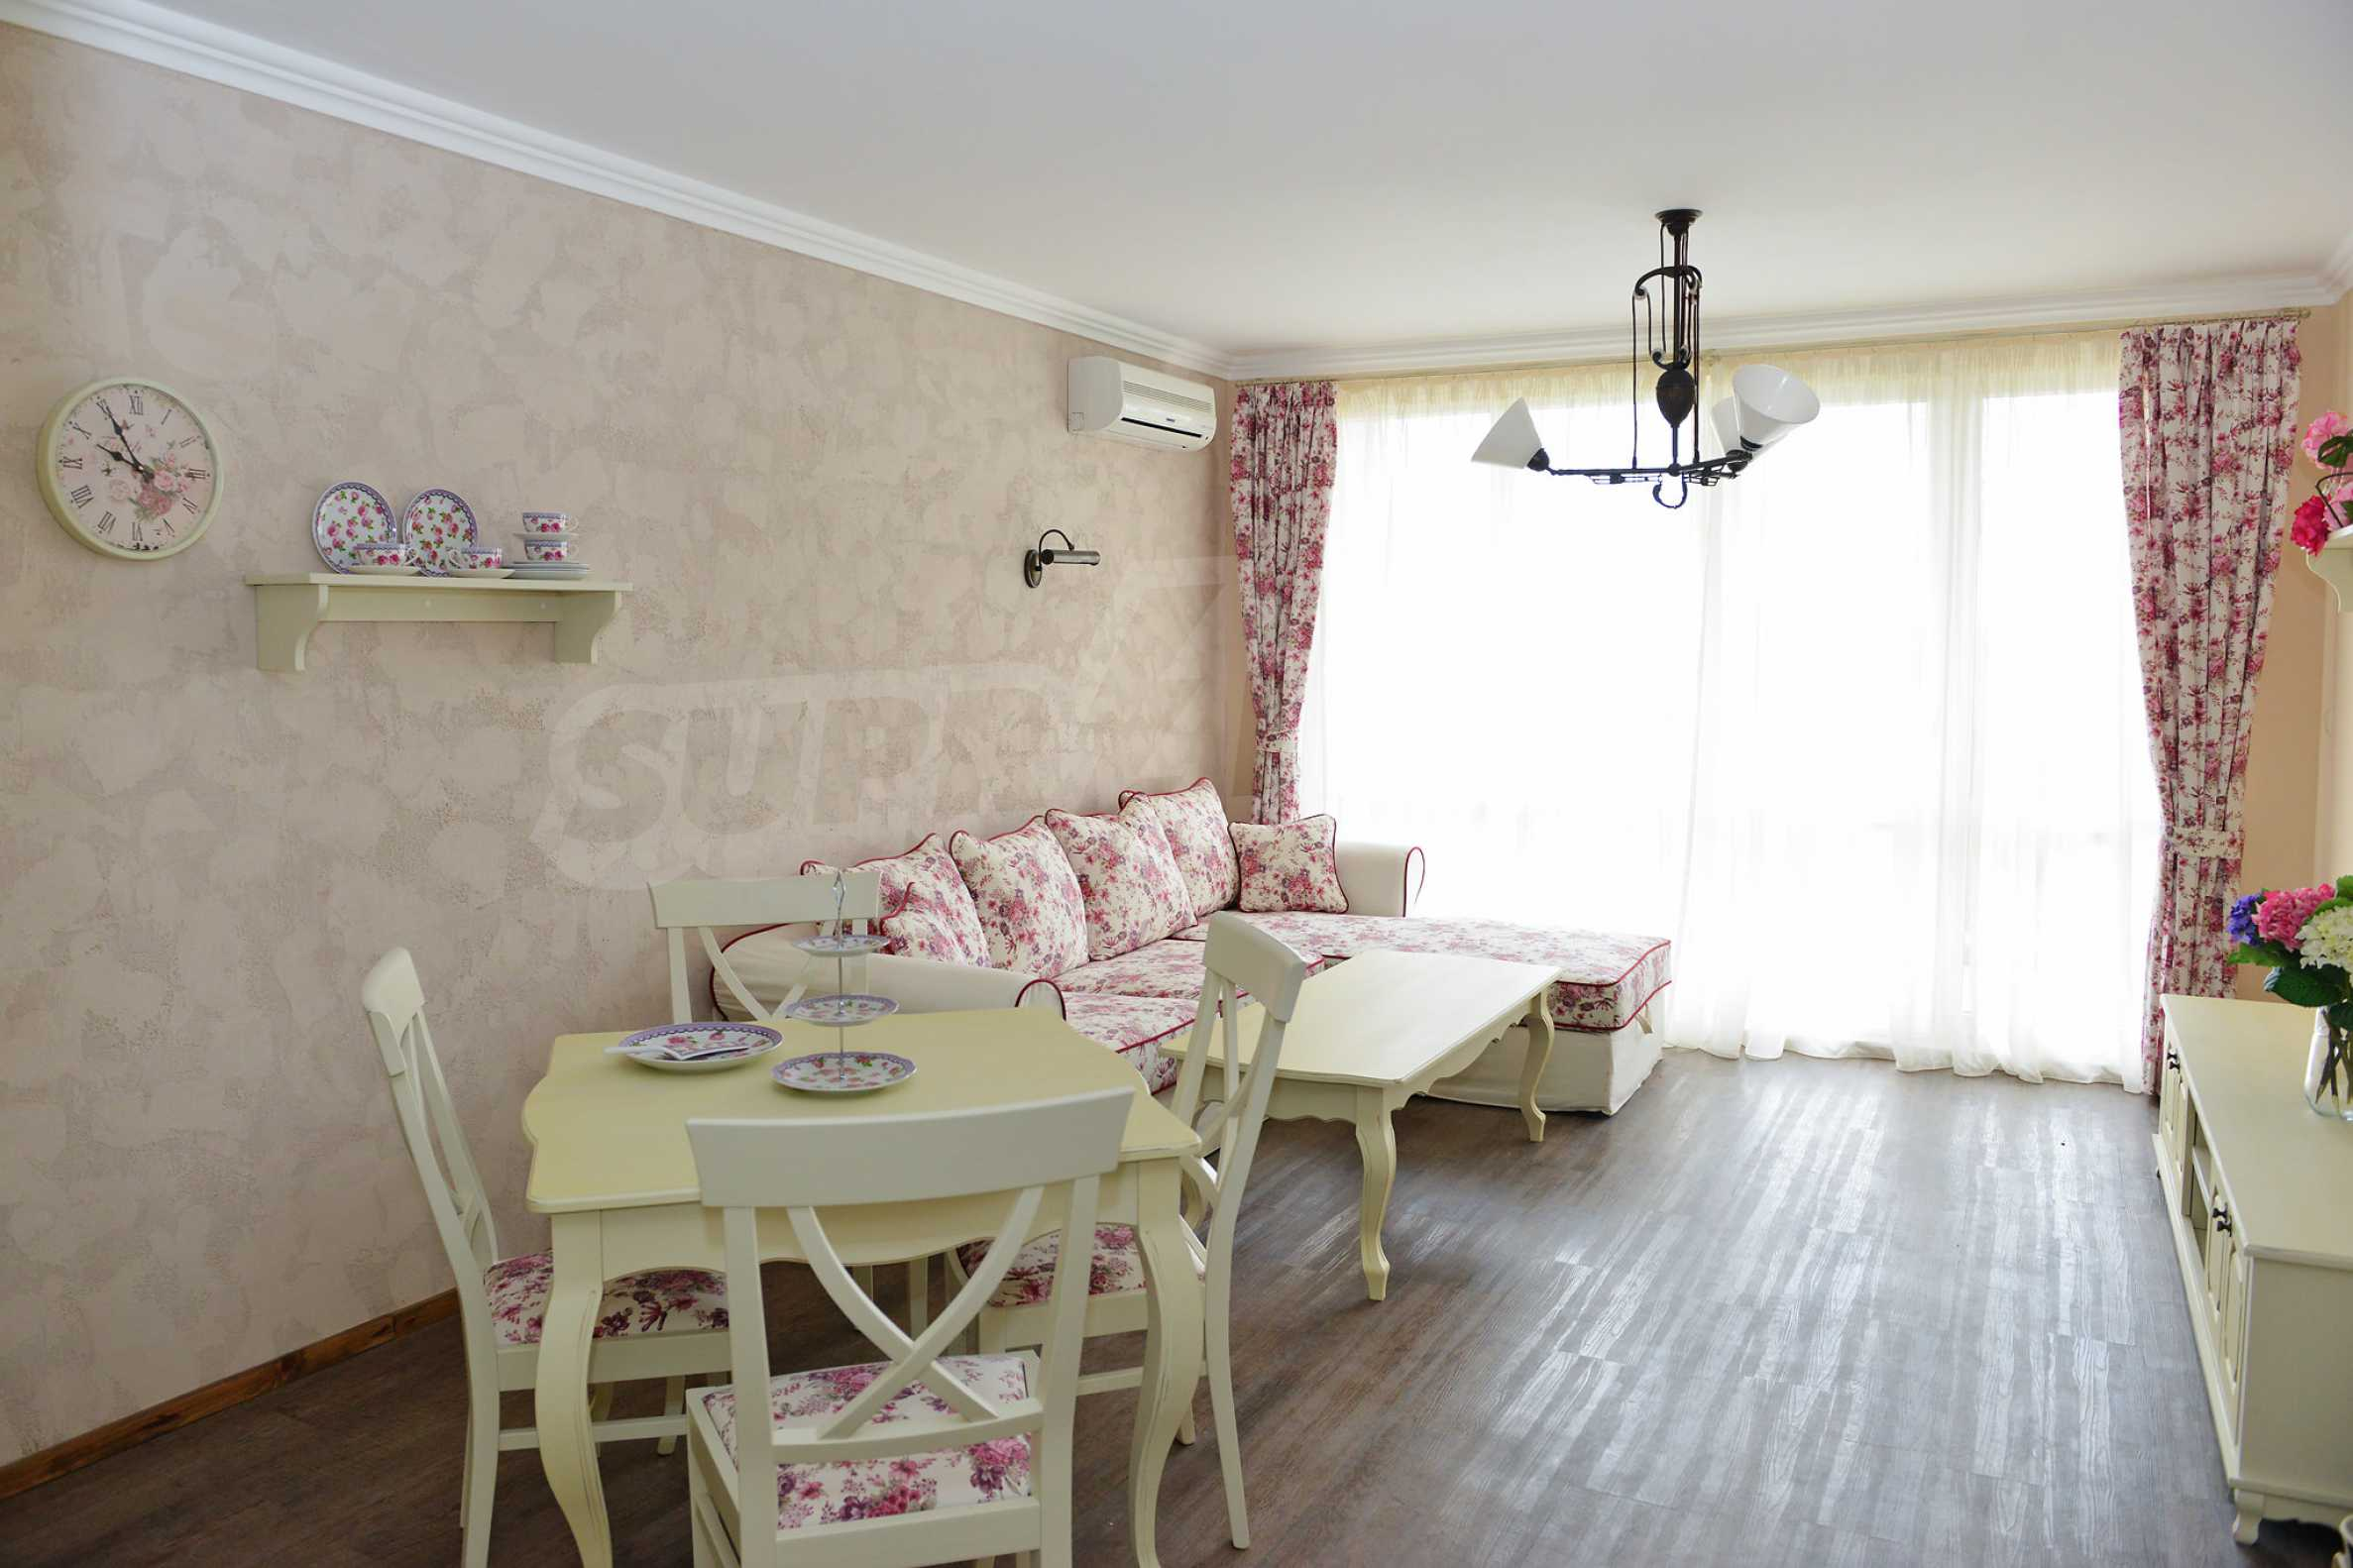 New apartment complex Atia resort in Chernomorets 27